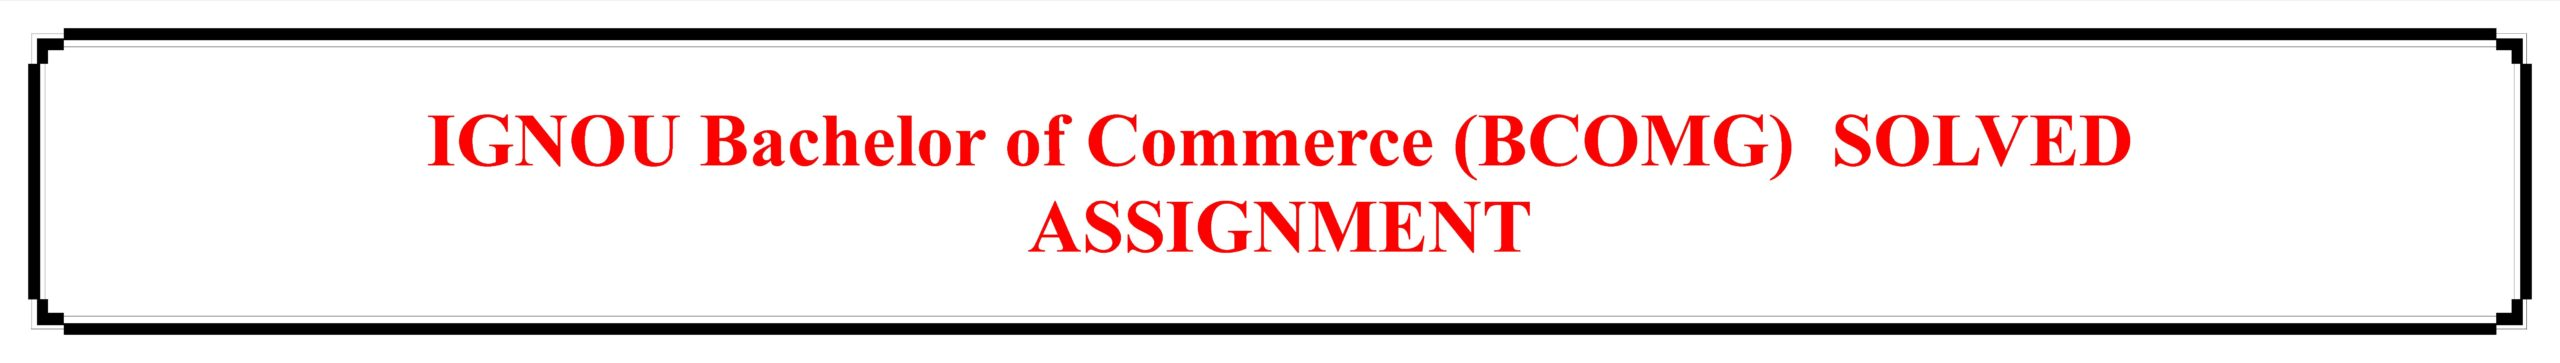 IGNOU Bachelor of Commerce (BCOMG)  SOLVED ASSIGNMENT